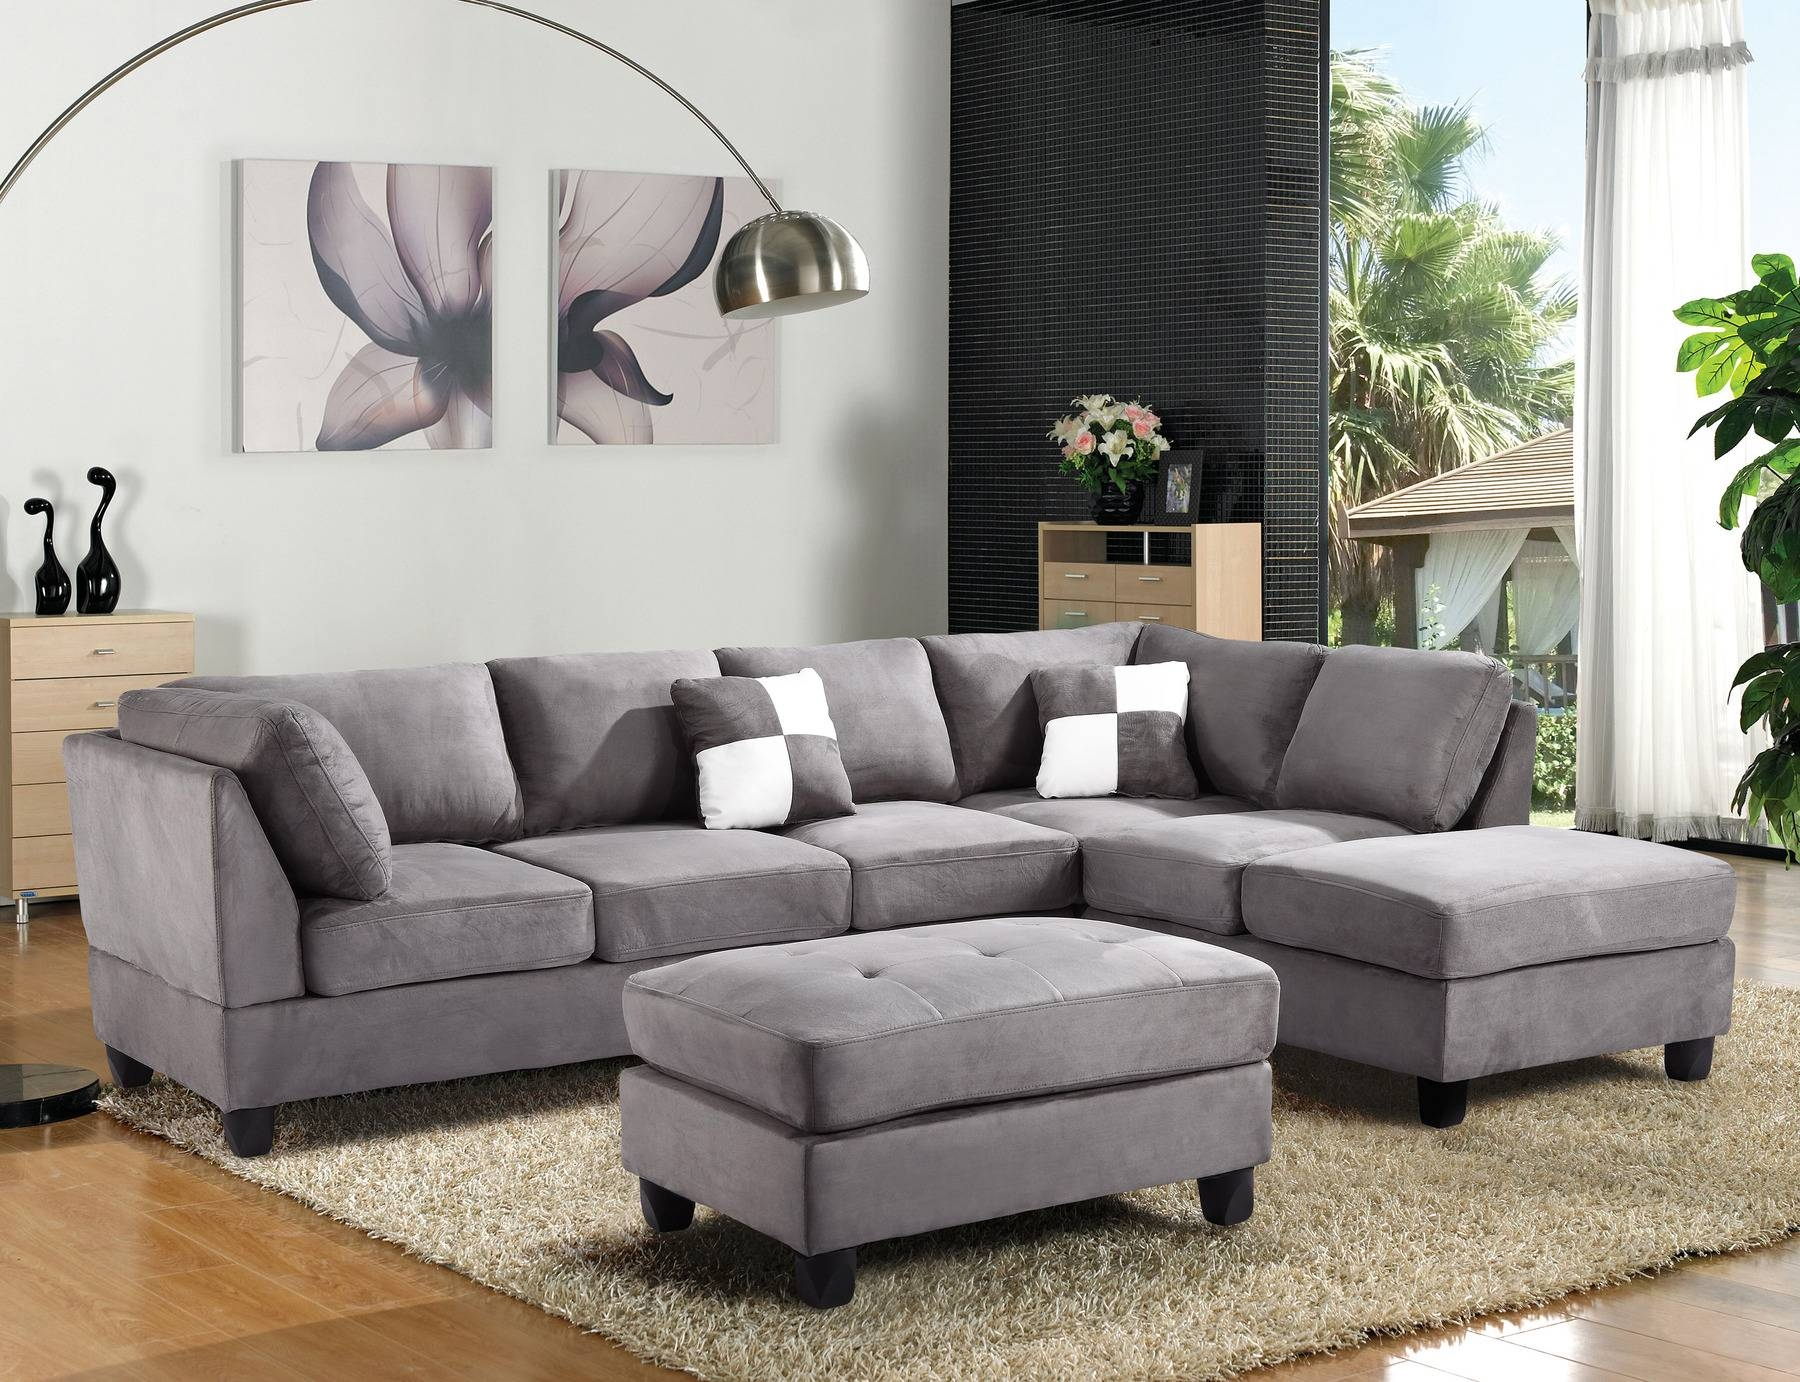 Furniture: Microfiber Sectional | Leather And Suede Sectional within Leather and Suede Sectional Sofa (Image 11 of 25)